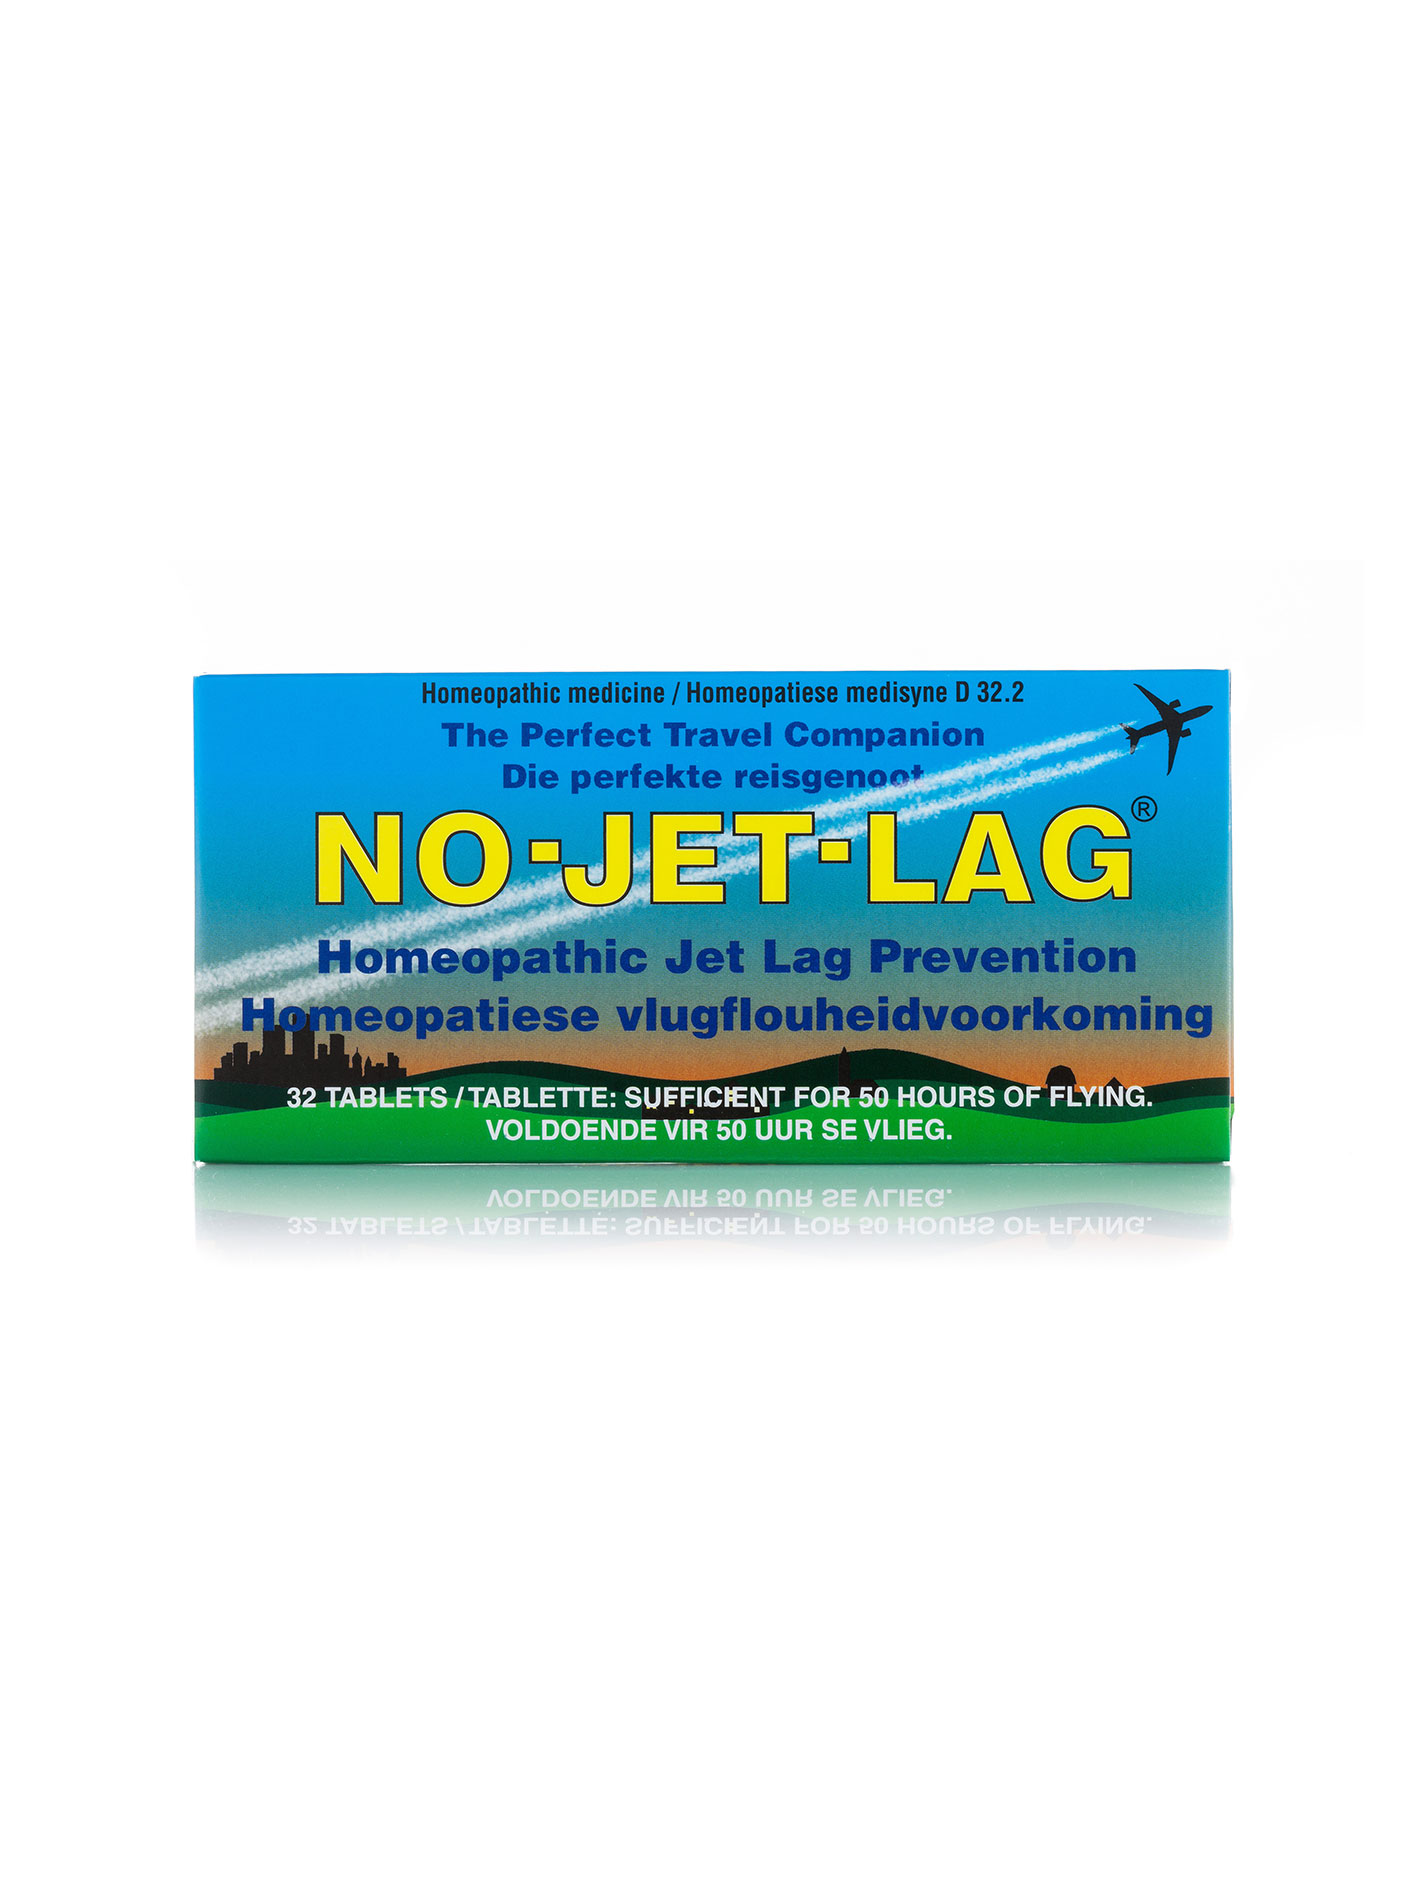 No-Jet-Lag is a unique, safe and effective homeopathic remedy that helps to alleviate travel fatigue and prevent jet lag. Surveys have found that up to 94% of long haul travellers, including flight attendants, are affected by symptoms such as tiredness, disorientation, and a lack of focus and motivation that can last several days. Simply chew one No-Jet-Lag at each take-off and landing and every two hours during the flight.